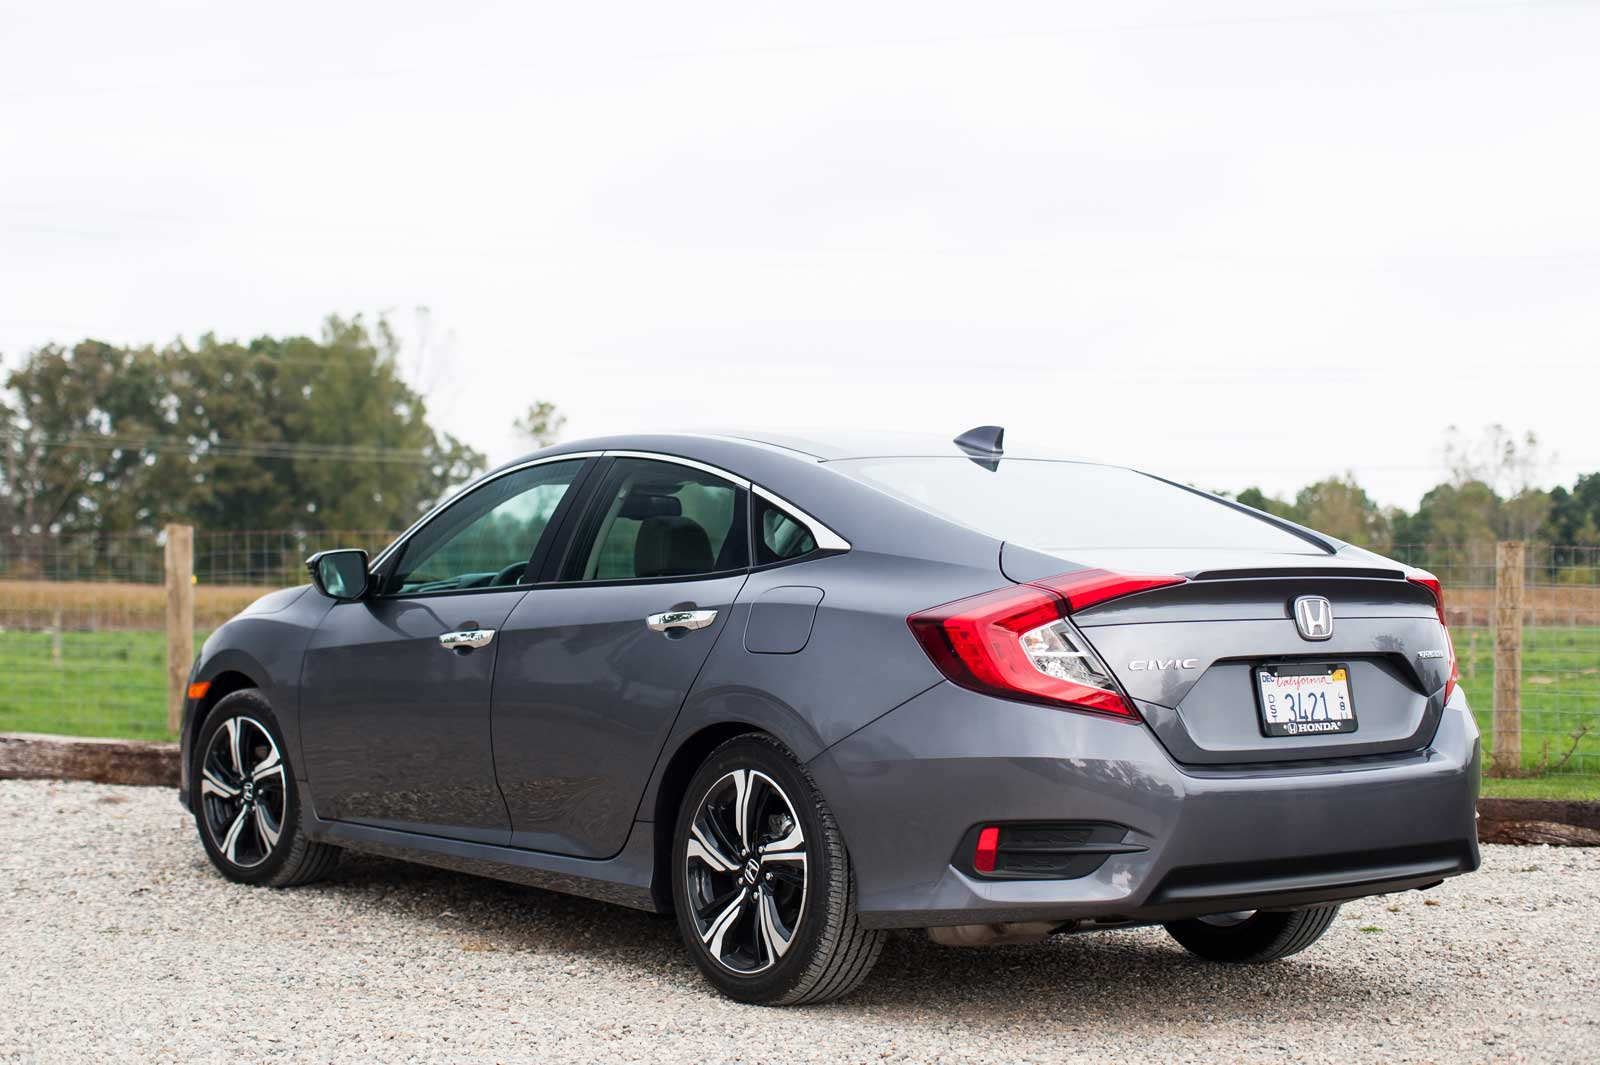 2016 honda civic review news for 2016 honda civic ex t review